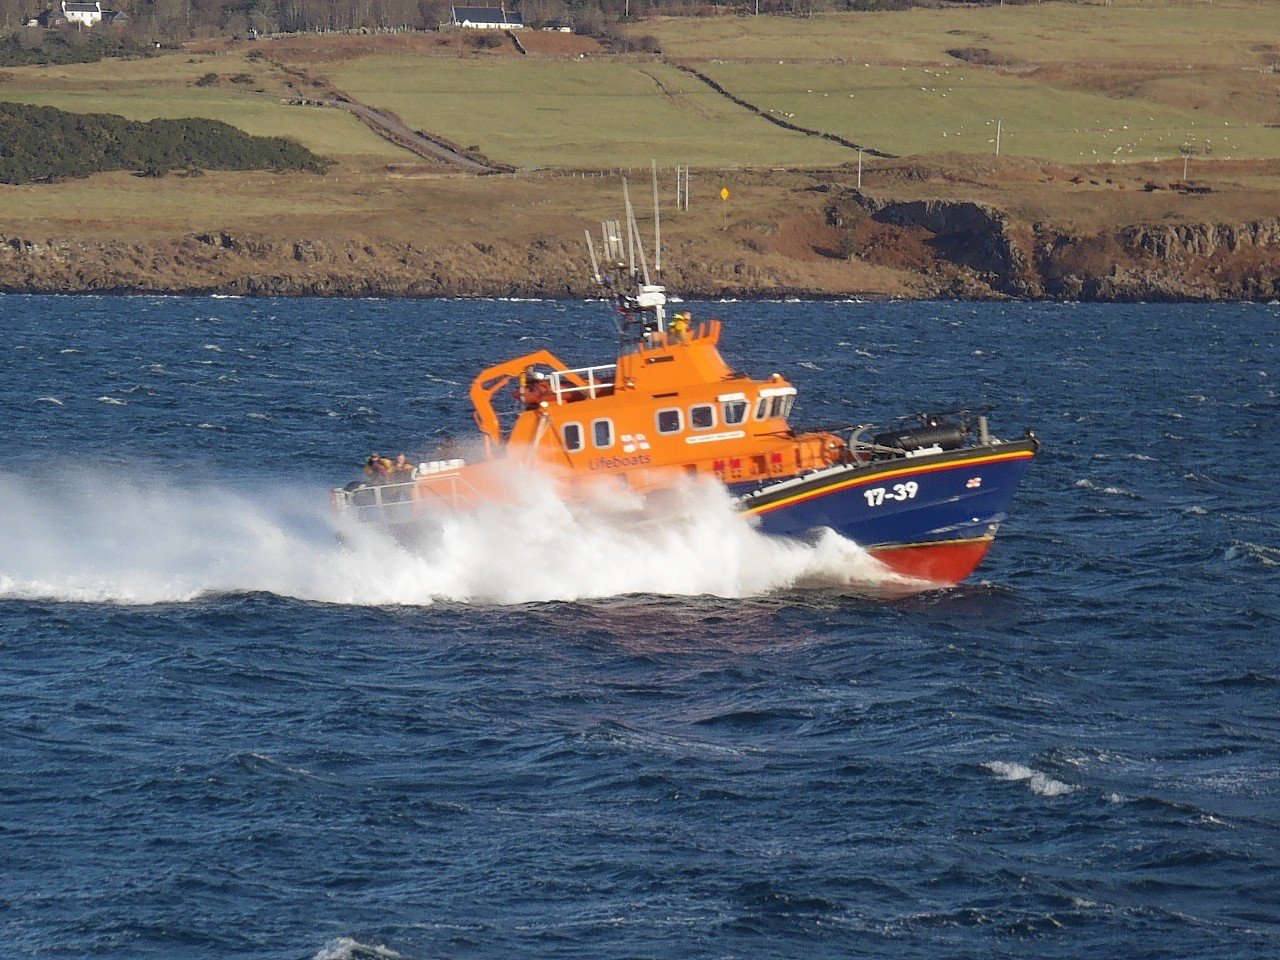 Tobermory lifeboat on exercise in the Sound of Mull, by Toby Roff, Lochaline, Morvern.